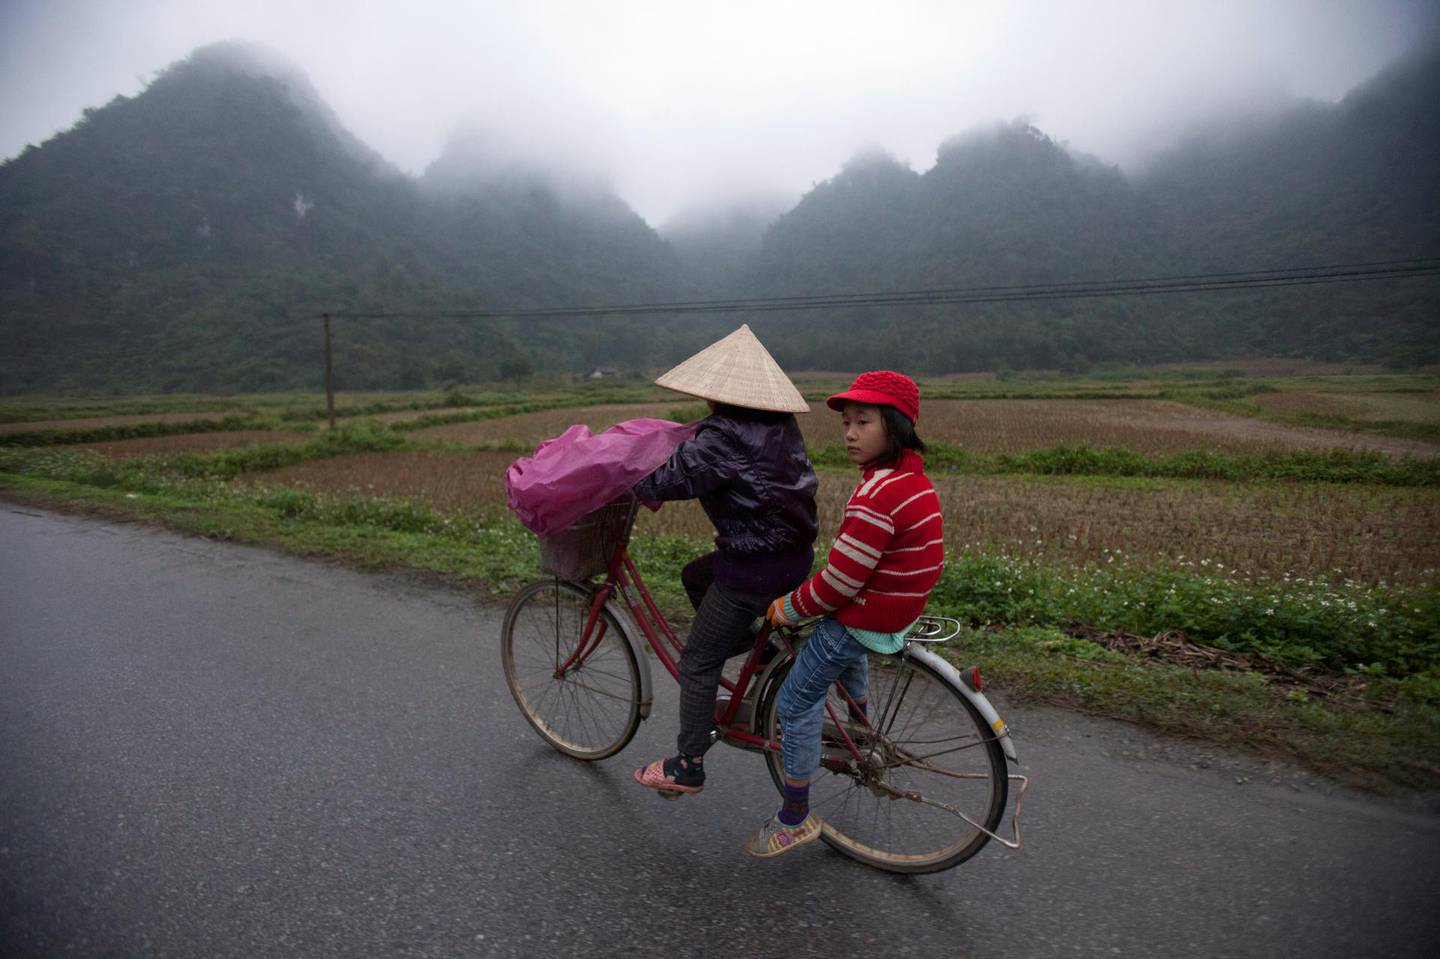 BINH GIA, VIETNAM - 2012/12/28: Students going to school in Binh Gia, Lang Son which is about 160 kilometers north of Hanoi. The temperature is about 10 celcious degree.. (Photo by Chau Doan/LightRocket via Getty Images)